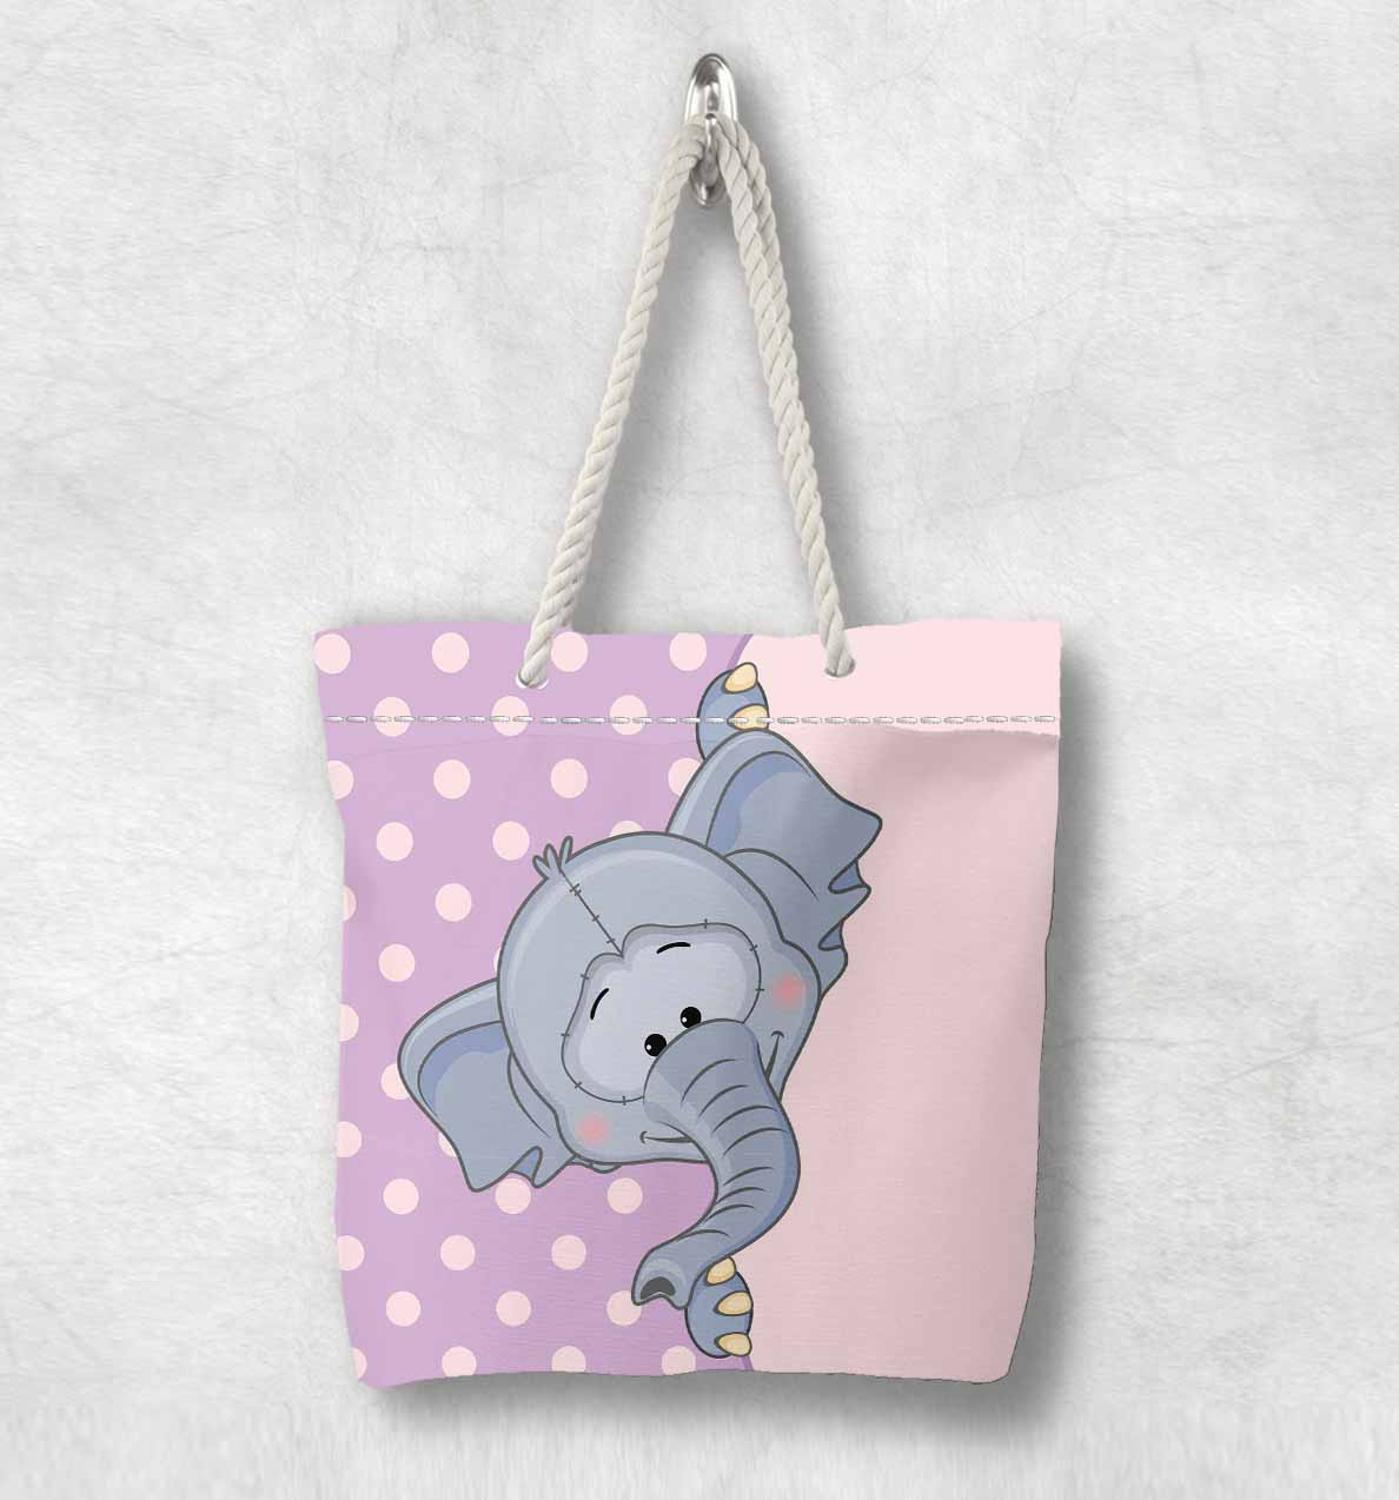 Else Purple Floor White Dot Gray Elephant New Fashion White Rope Handle Canvas Bag Cotton Canvas Zippered Tote Bag Shoulder Bag